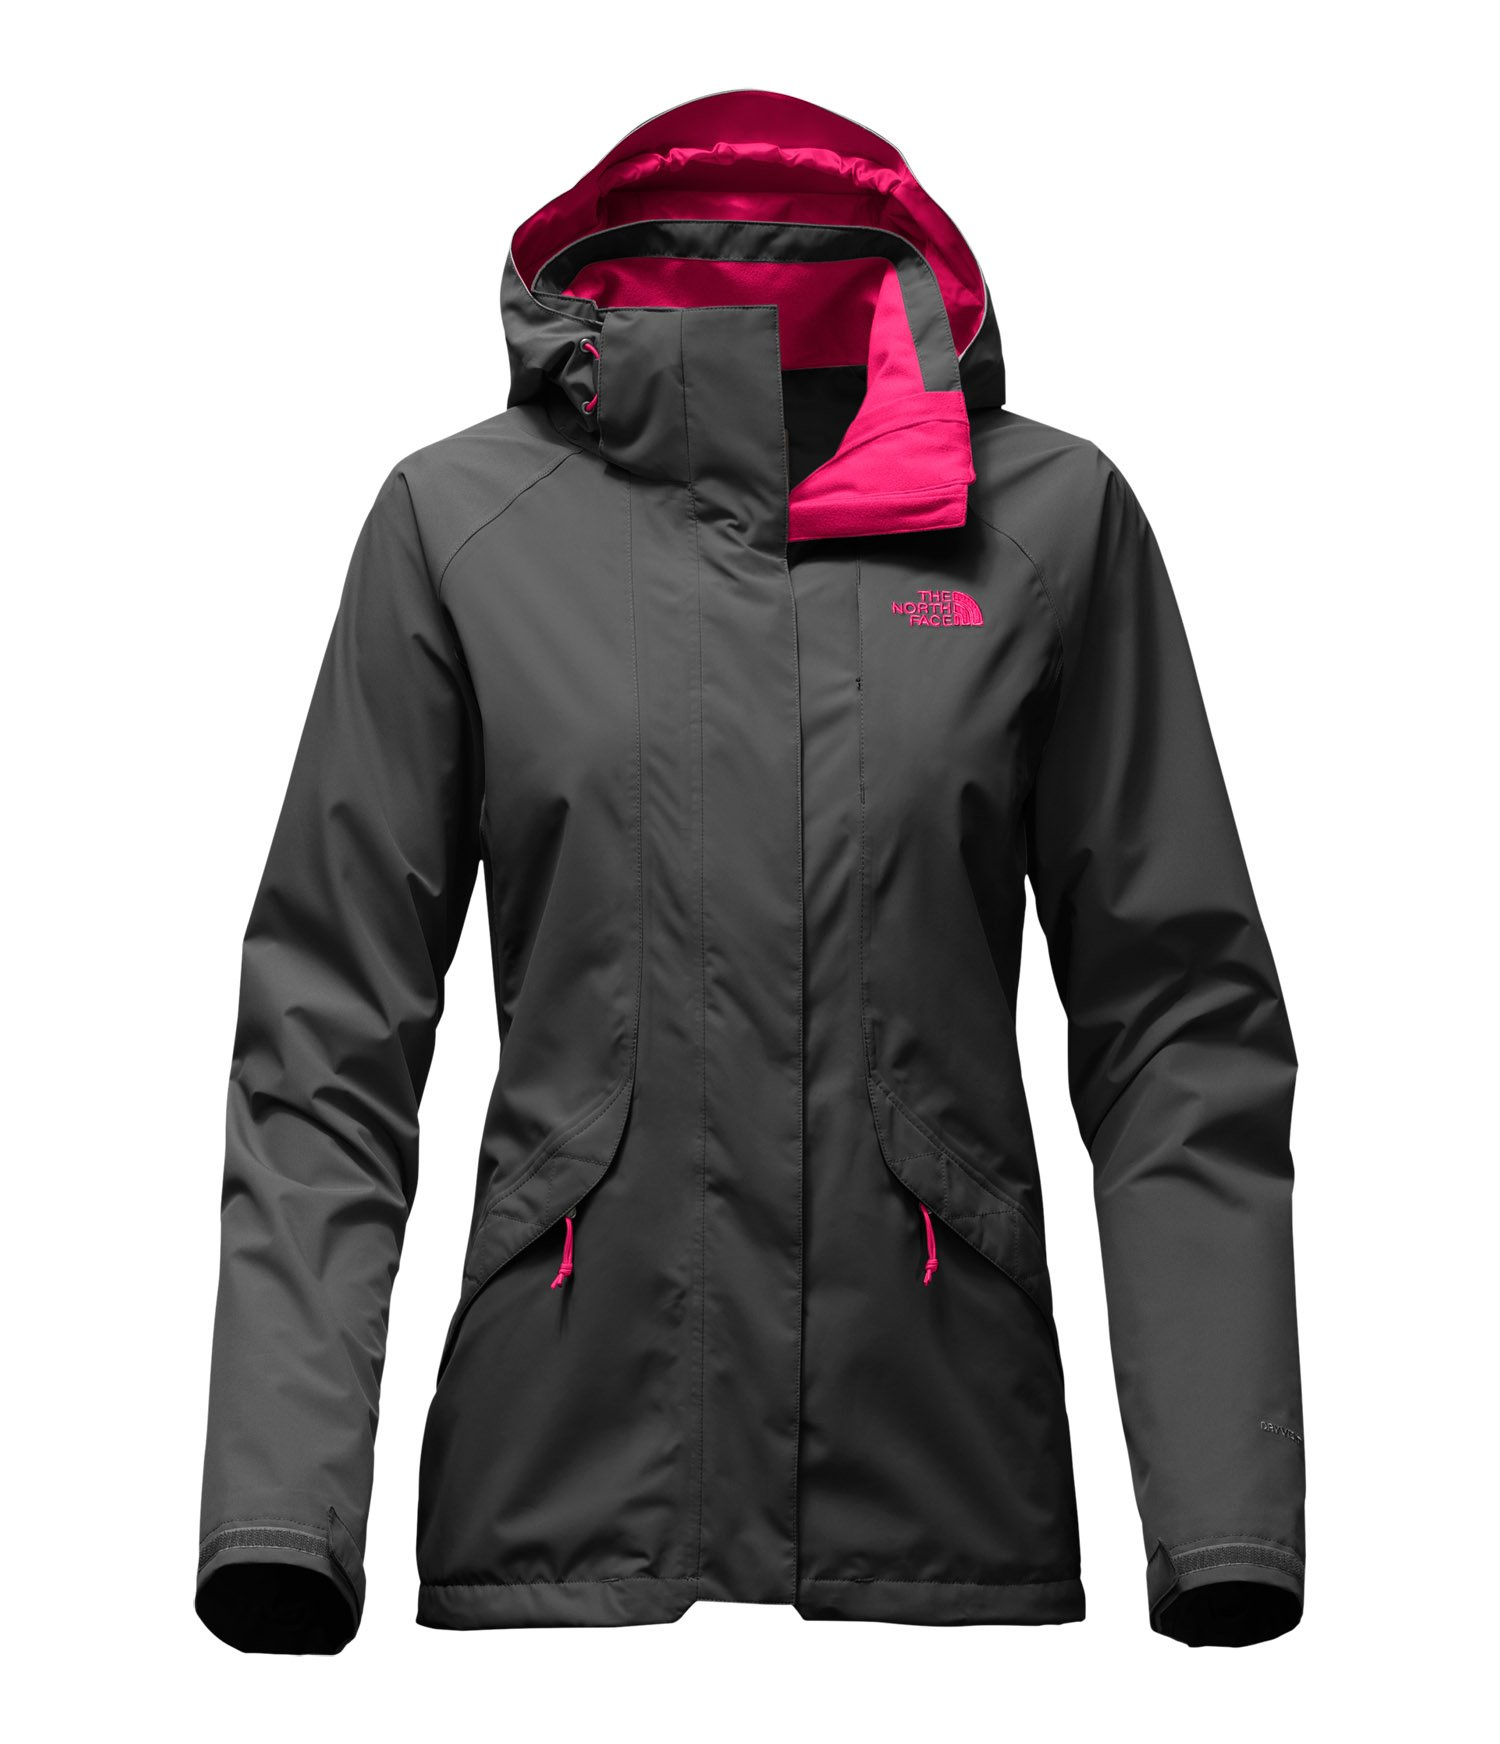 The North Face Boundary Triclimate Jacket - Women's Asphalt Grey/Cerise Pink Medium